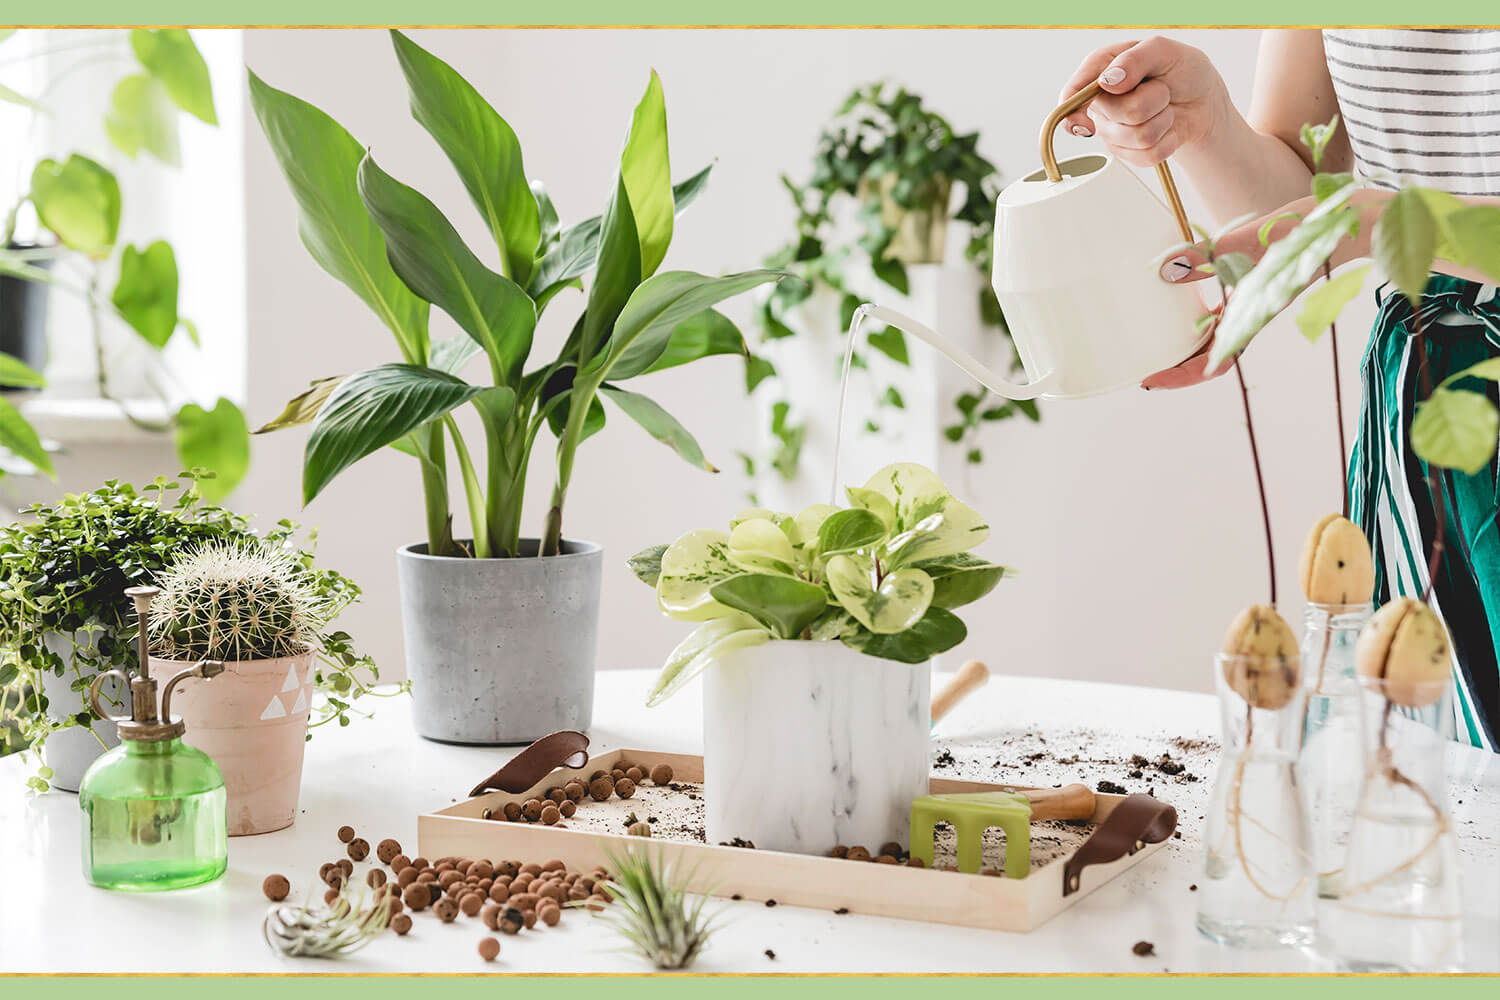 watering green plants with white watering can